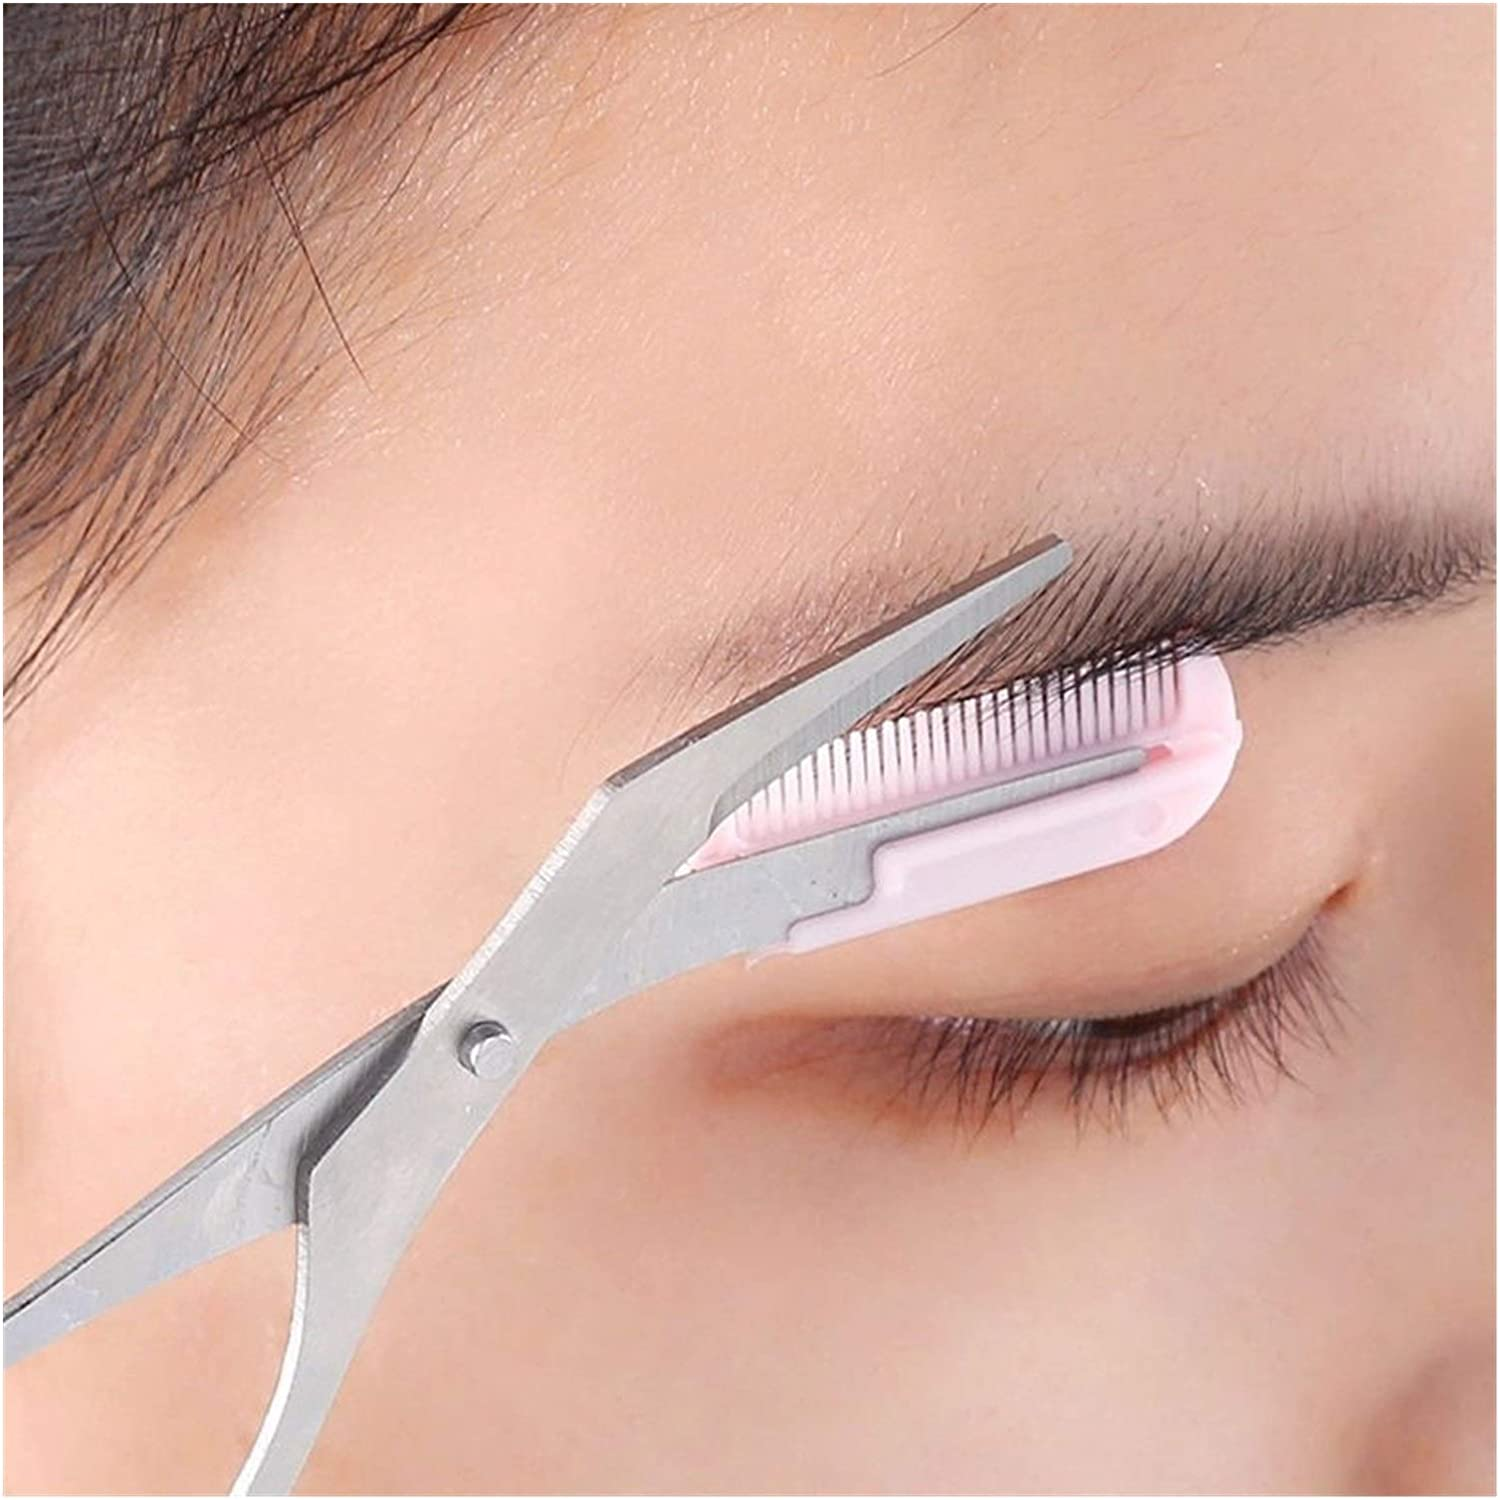 Makeup Pink Eyebrow Trimmer Scissors Shea Fashionable with Comb Removal Hair Sale